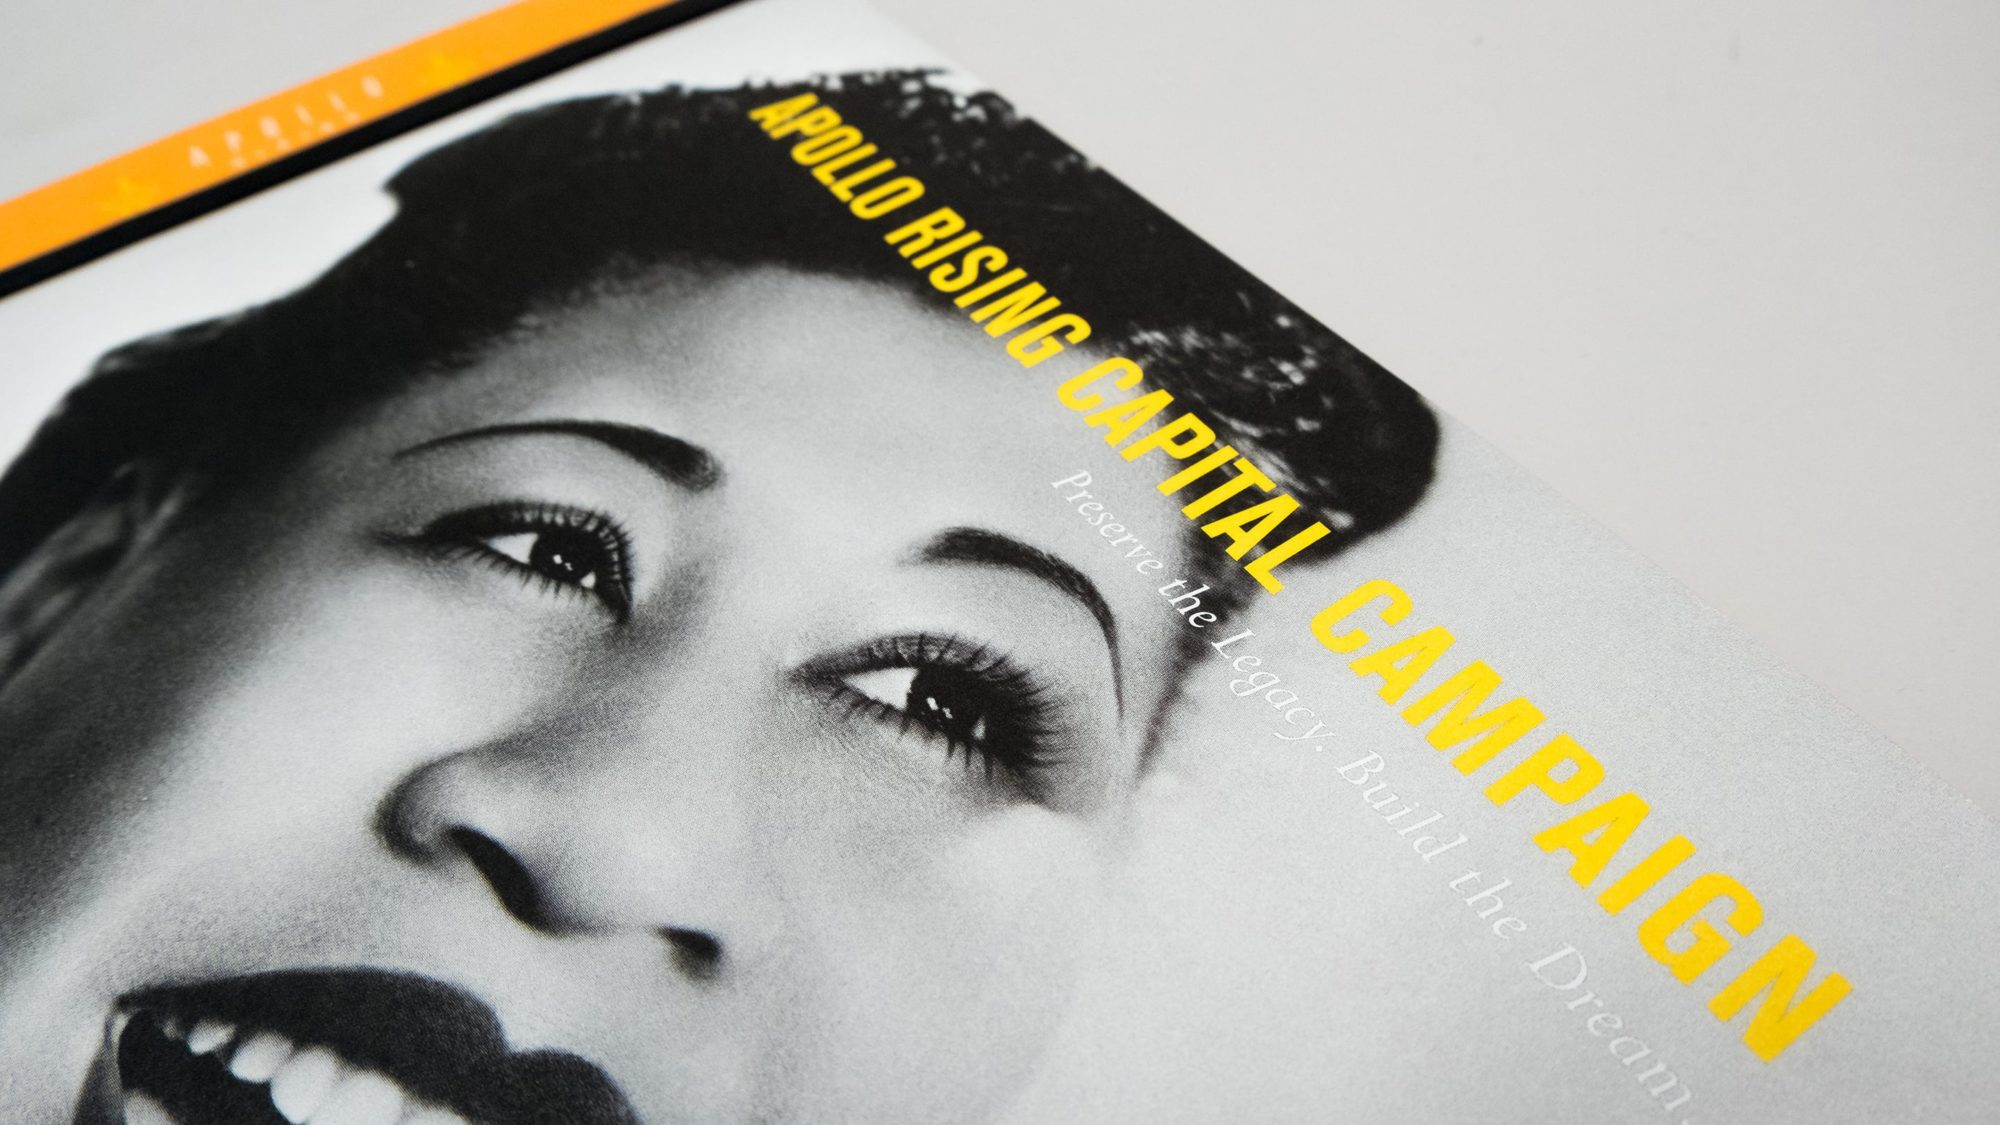 Cover design of caste statement with Apollo Rising title and black and white photo of Billie Holiday